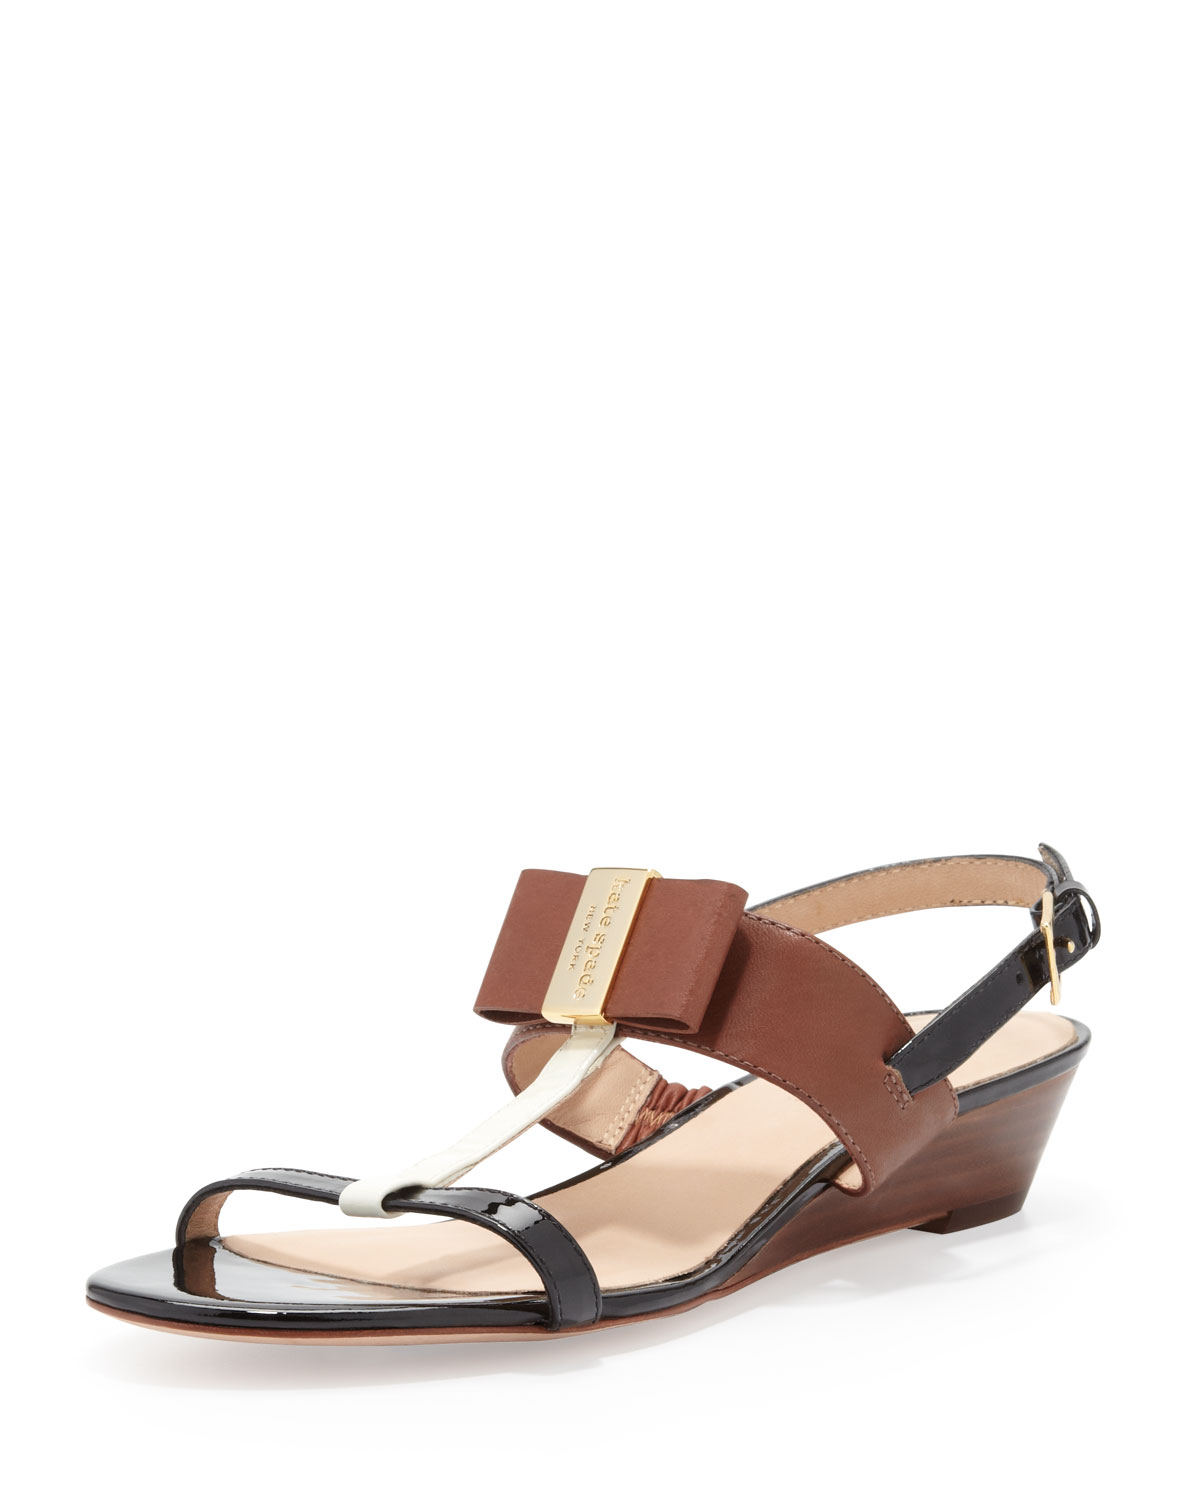 vinny colorblock bow wedge sandal, multi   kate spade new york   Cream/Luggage